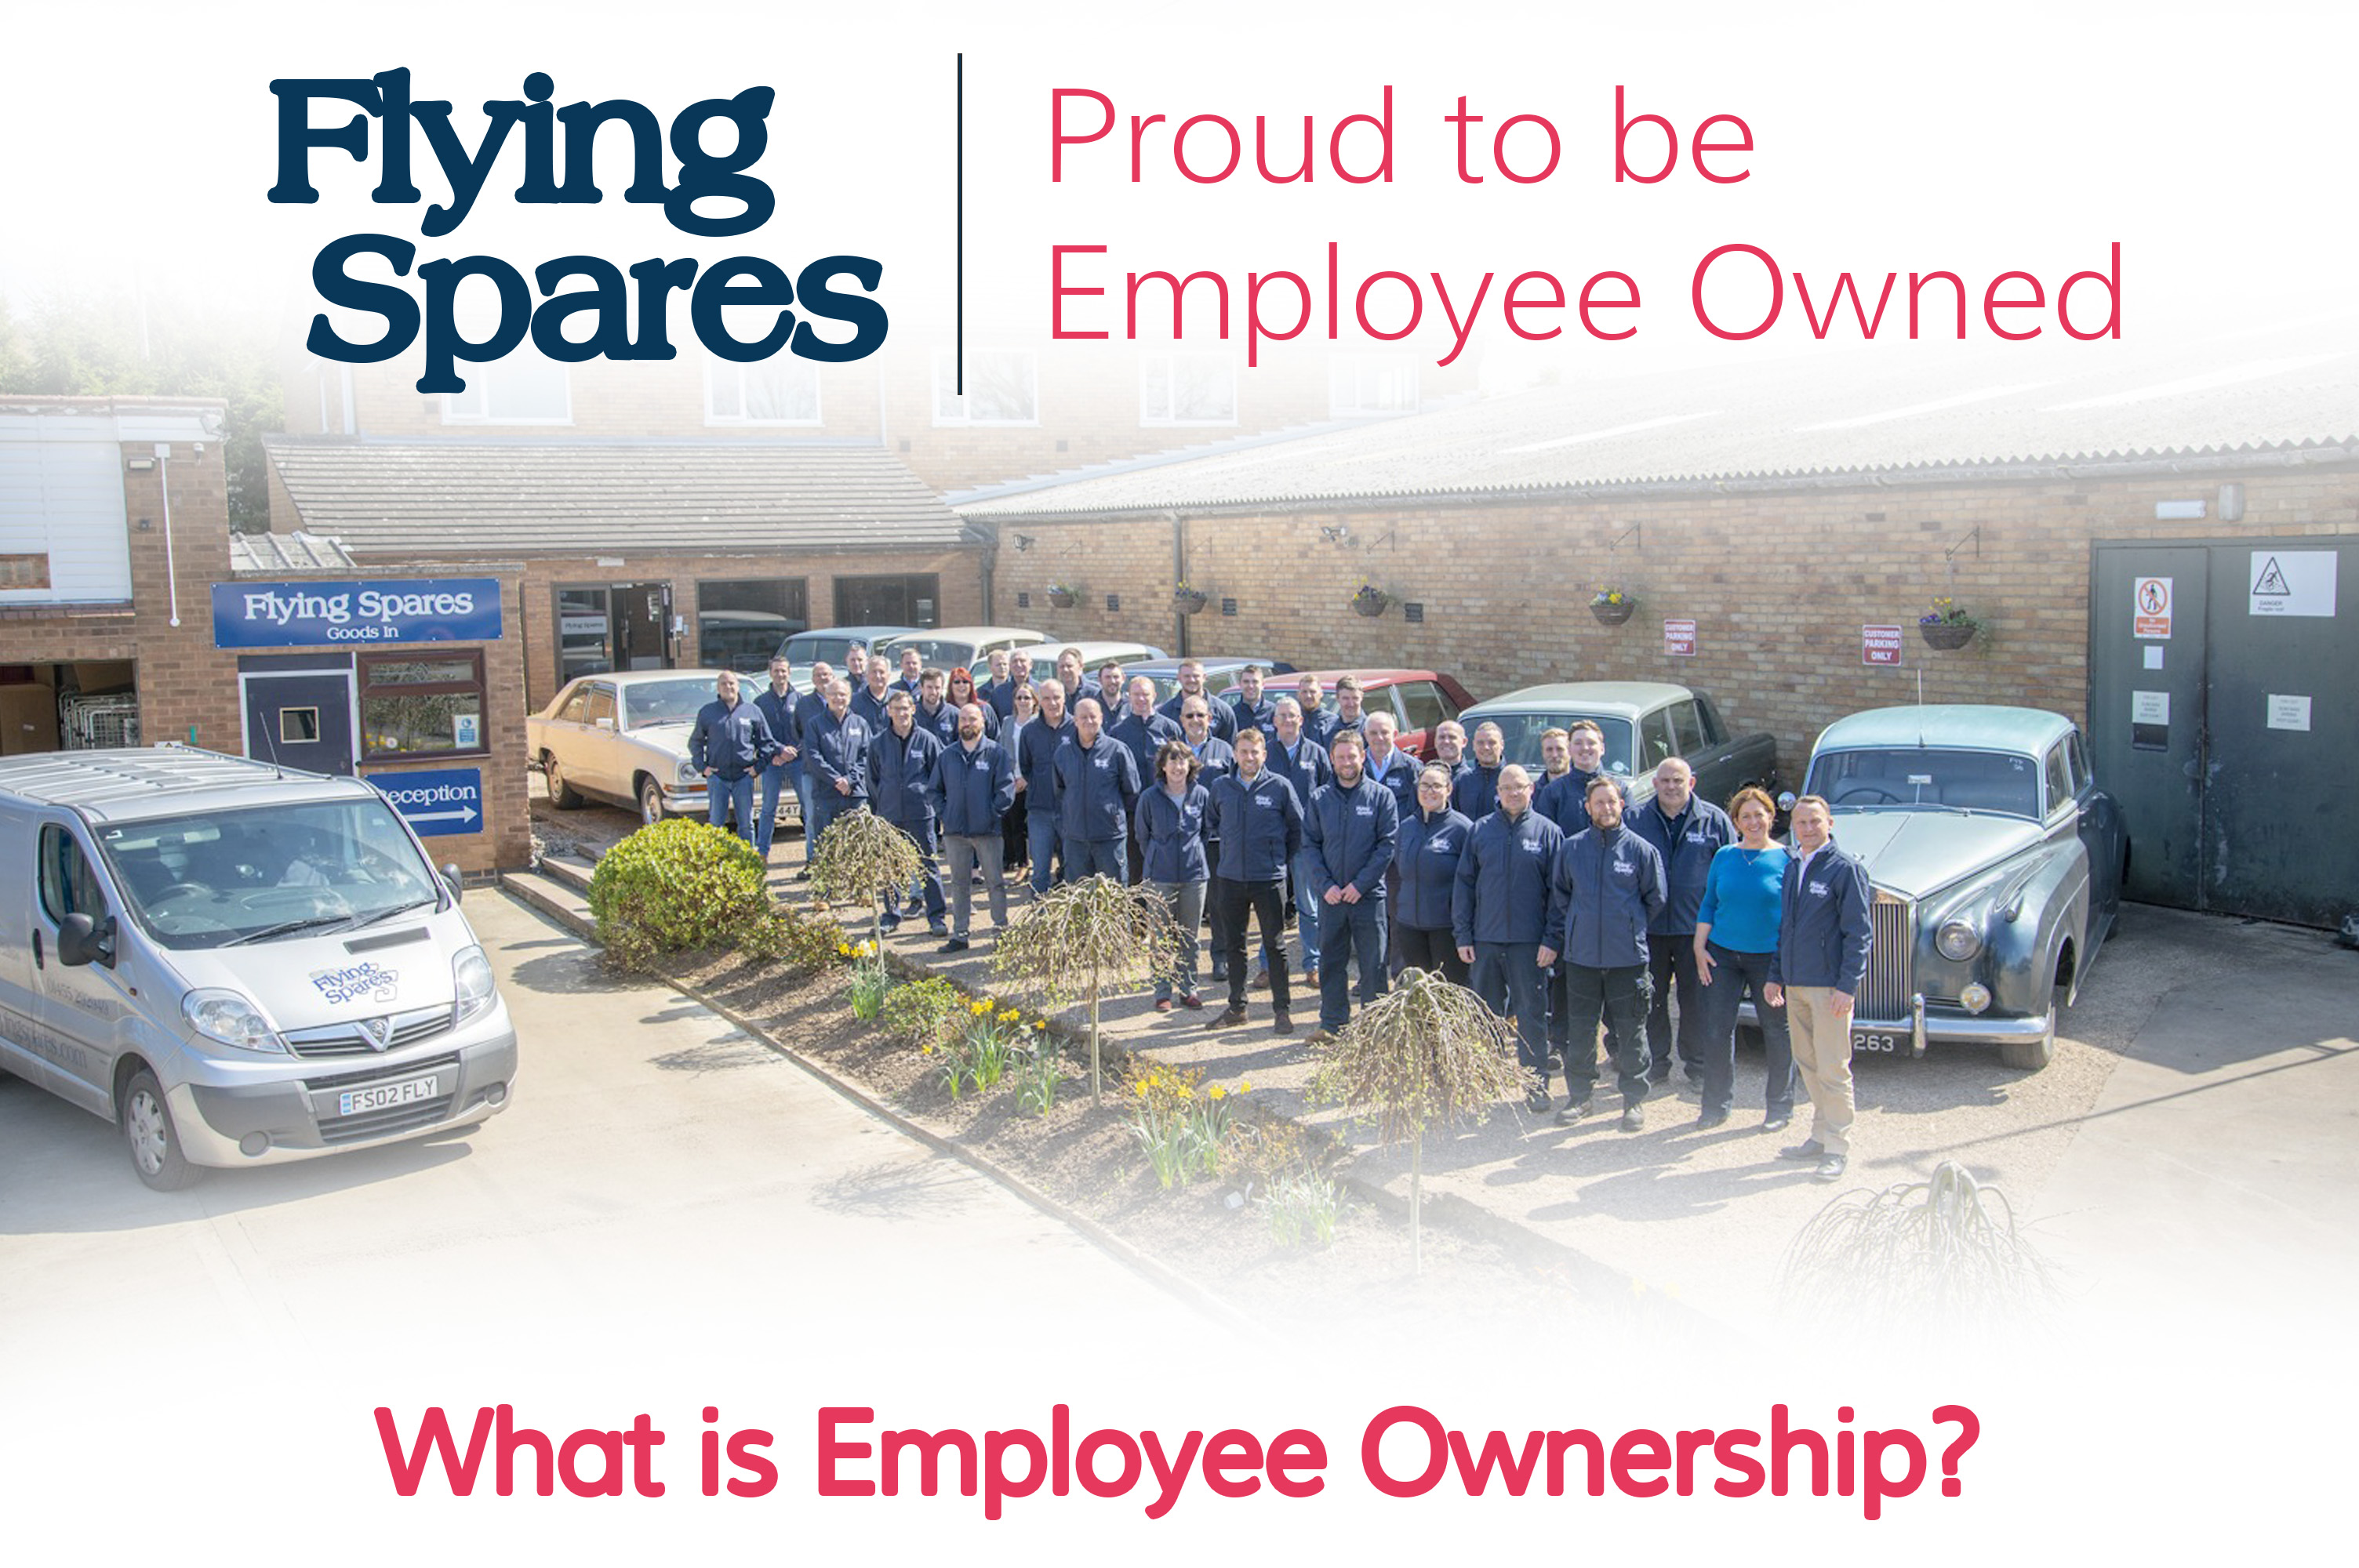 What is Employee Ownership?